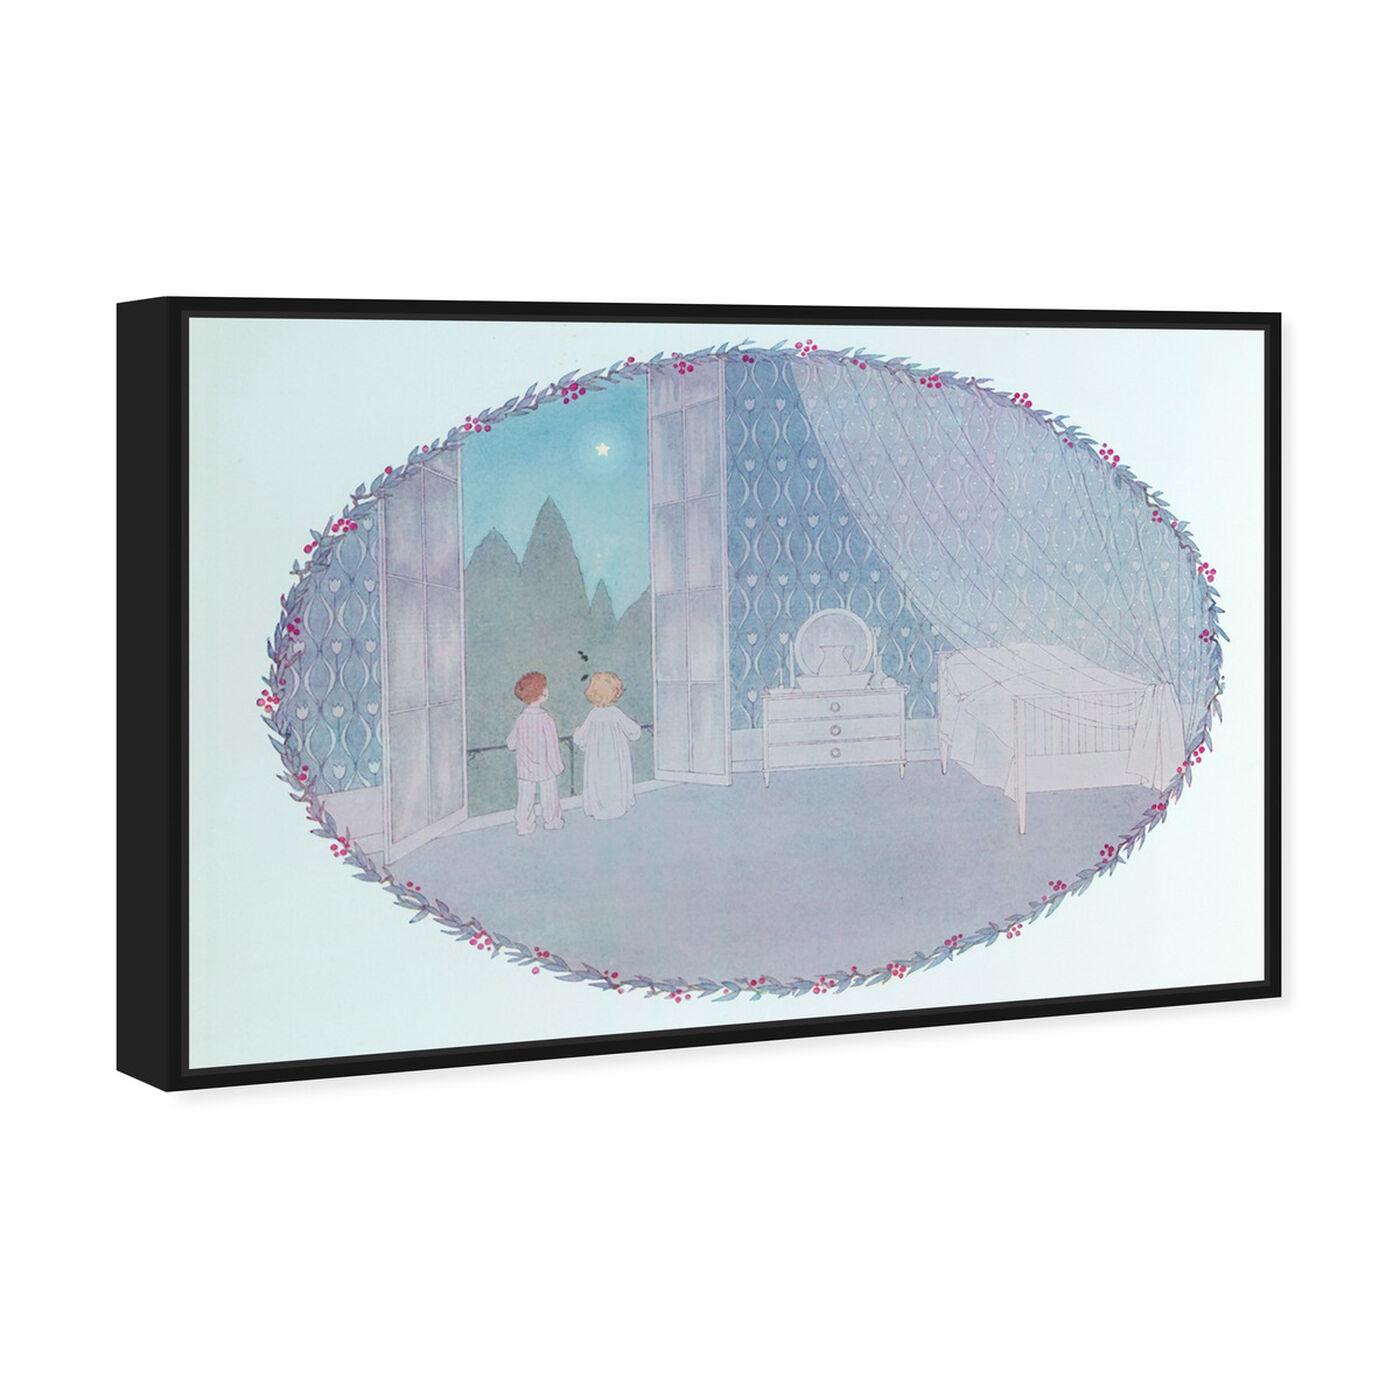 Angled view of Twinkle Twinkle Little Star featuring nature and landscape and skyscapes art.